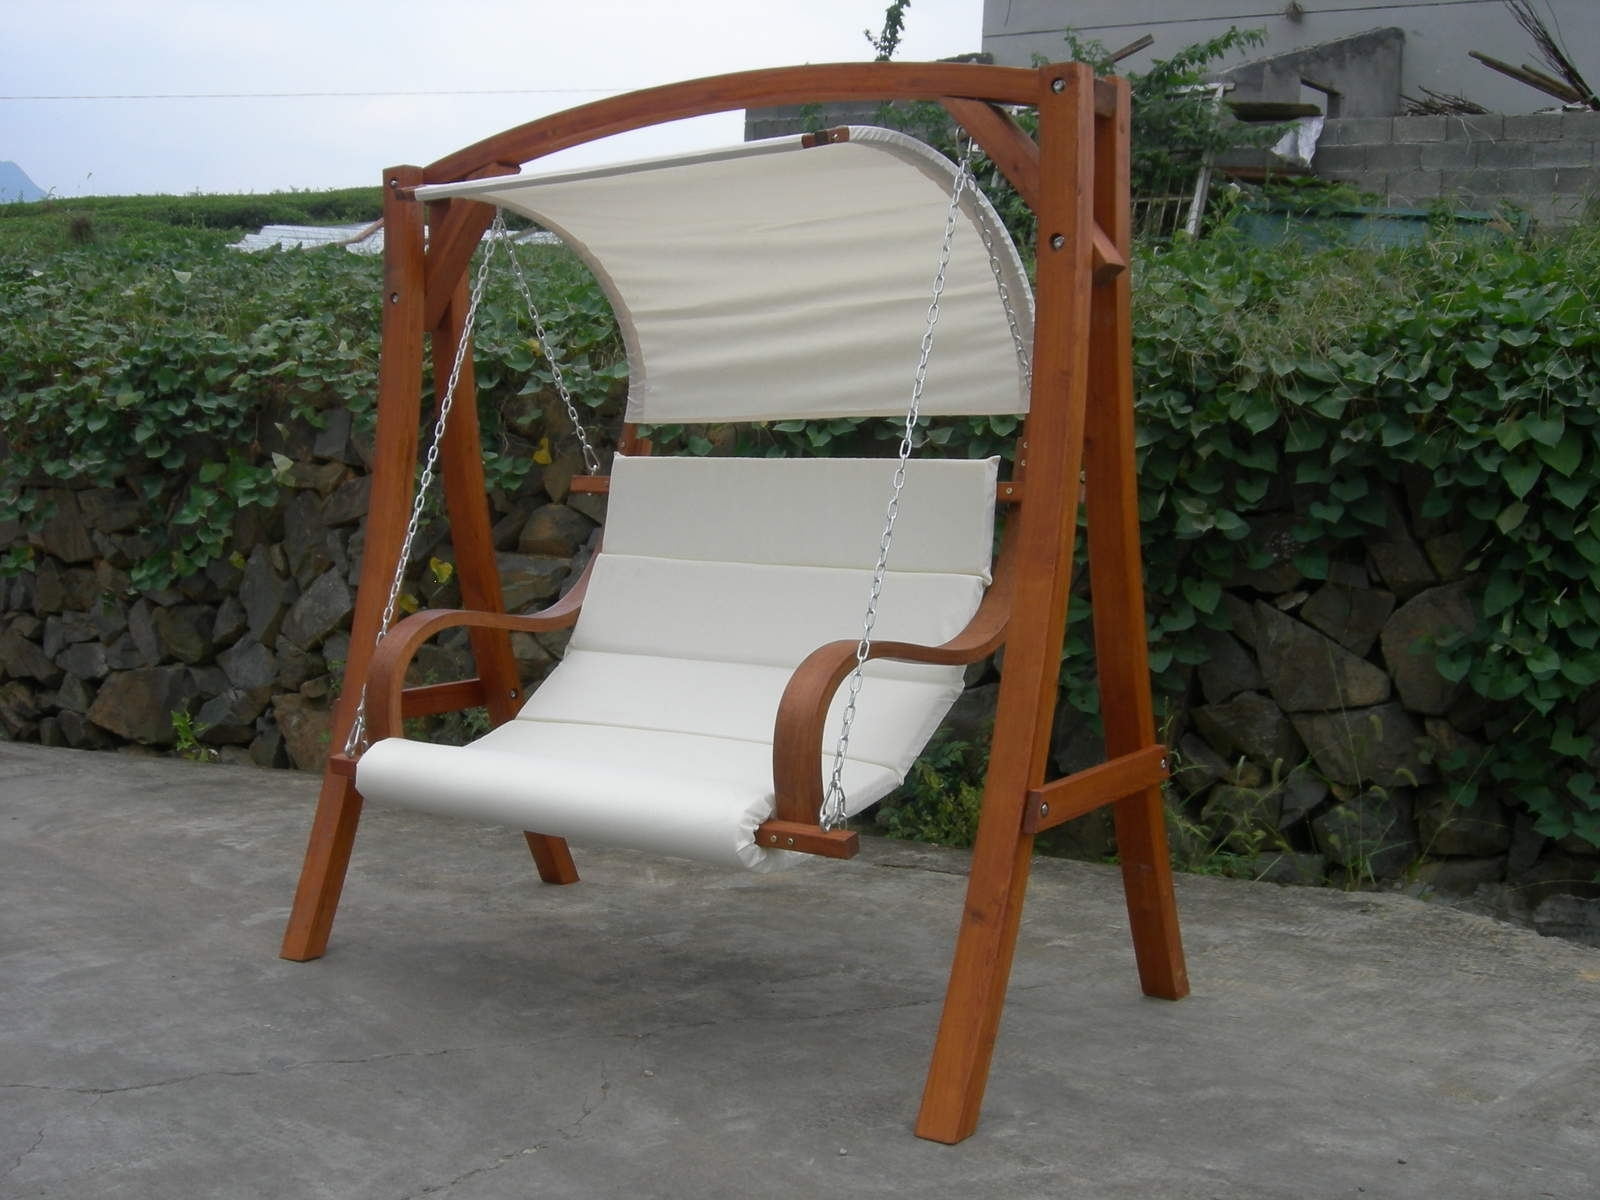 Image of: Garden Swing Seat With A Canopy Buydirect4u With Wooden Garden Swing Seats Outdoor Furniture Fun Wooden Garden Swing Seats Outdoor Furniture